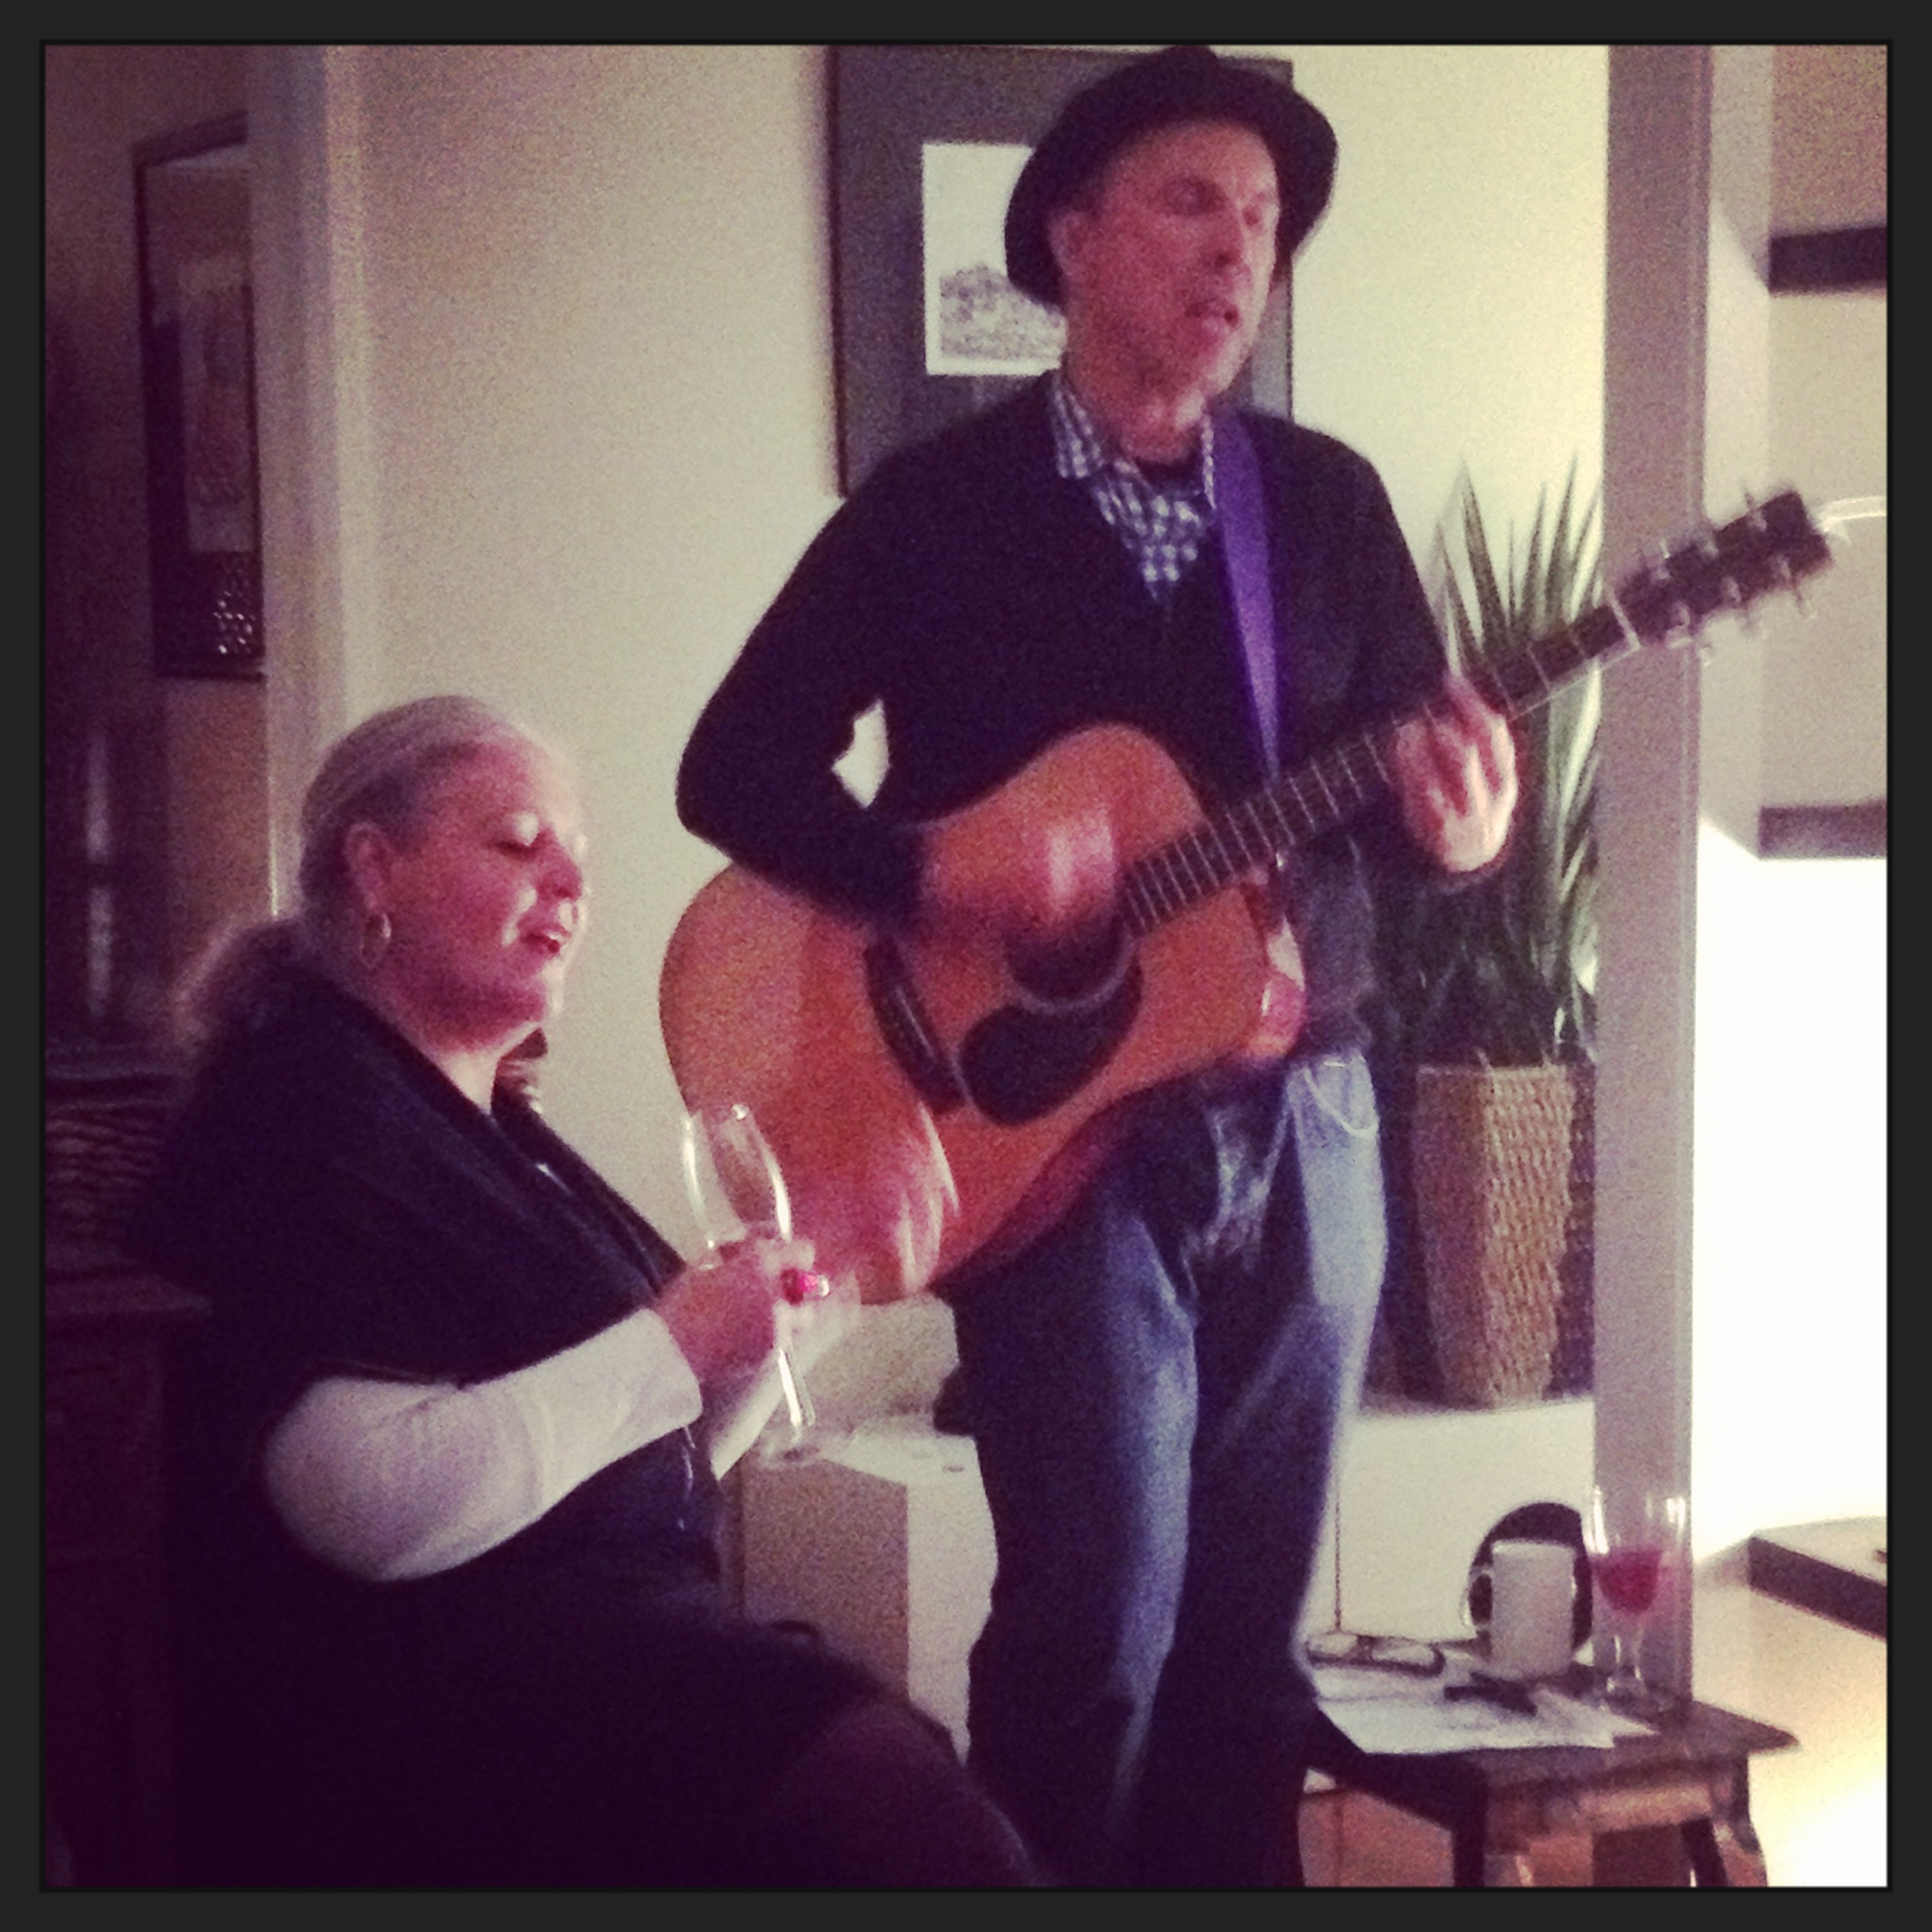 Acoustic house concert for Ursula